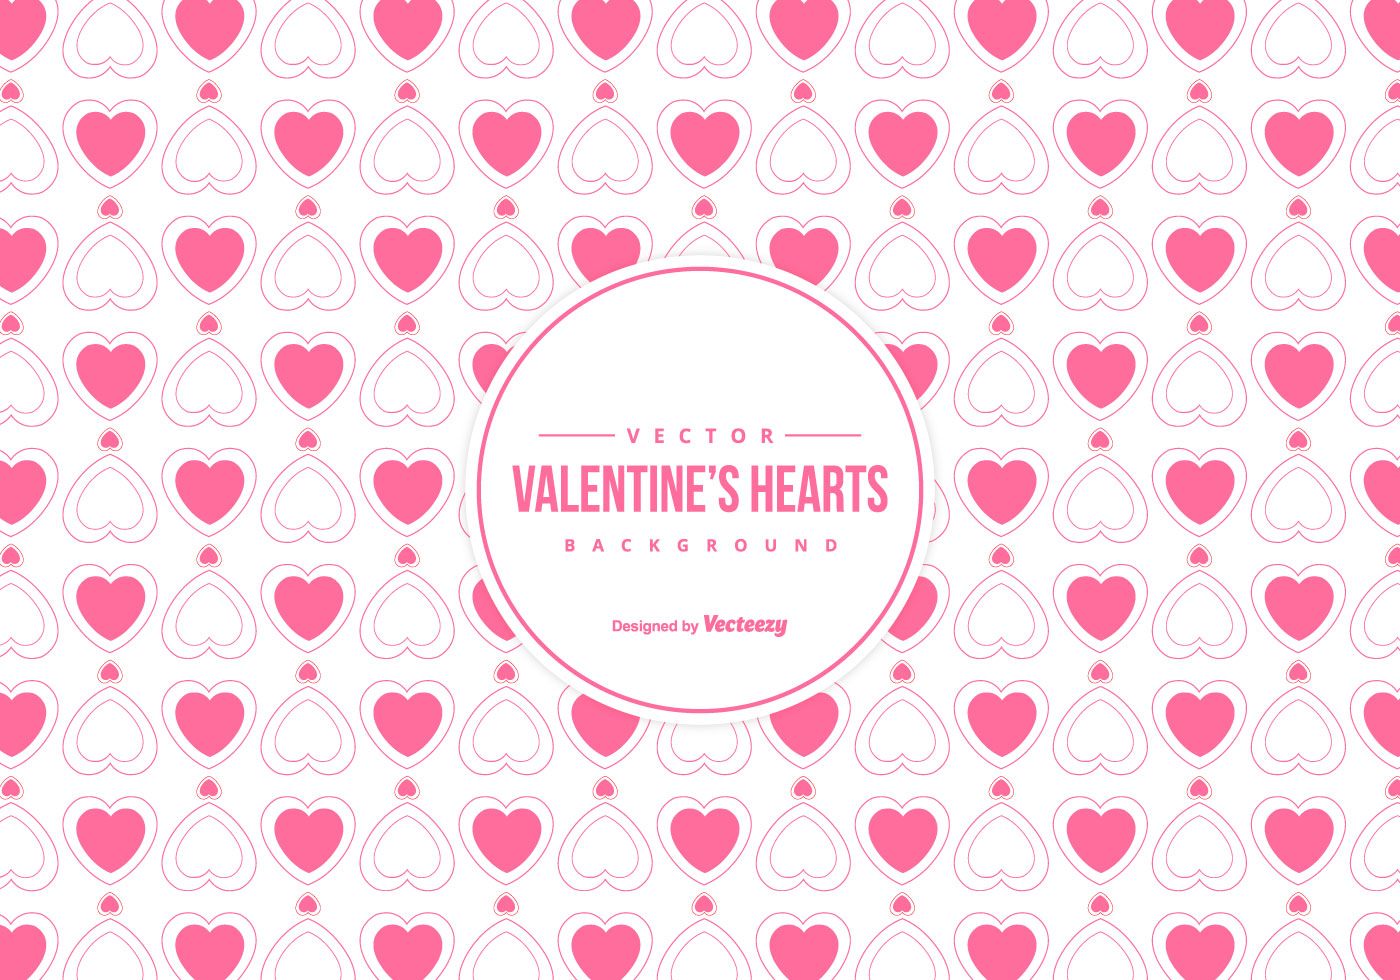 Cute valentine 39 s day background download free vectors clipart graphics vector art - Cute valentines backgrounds ...